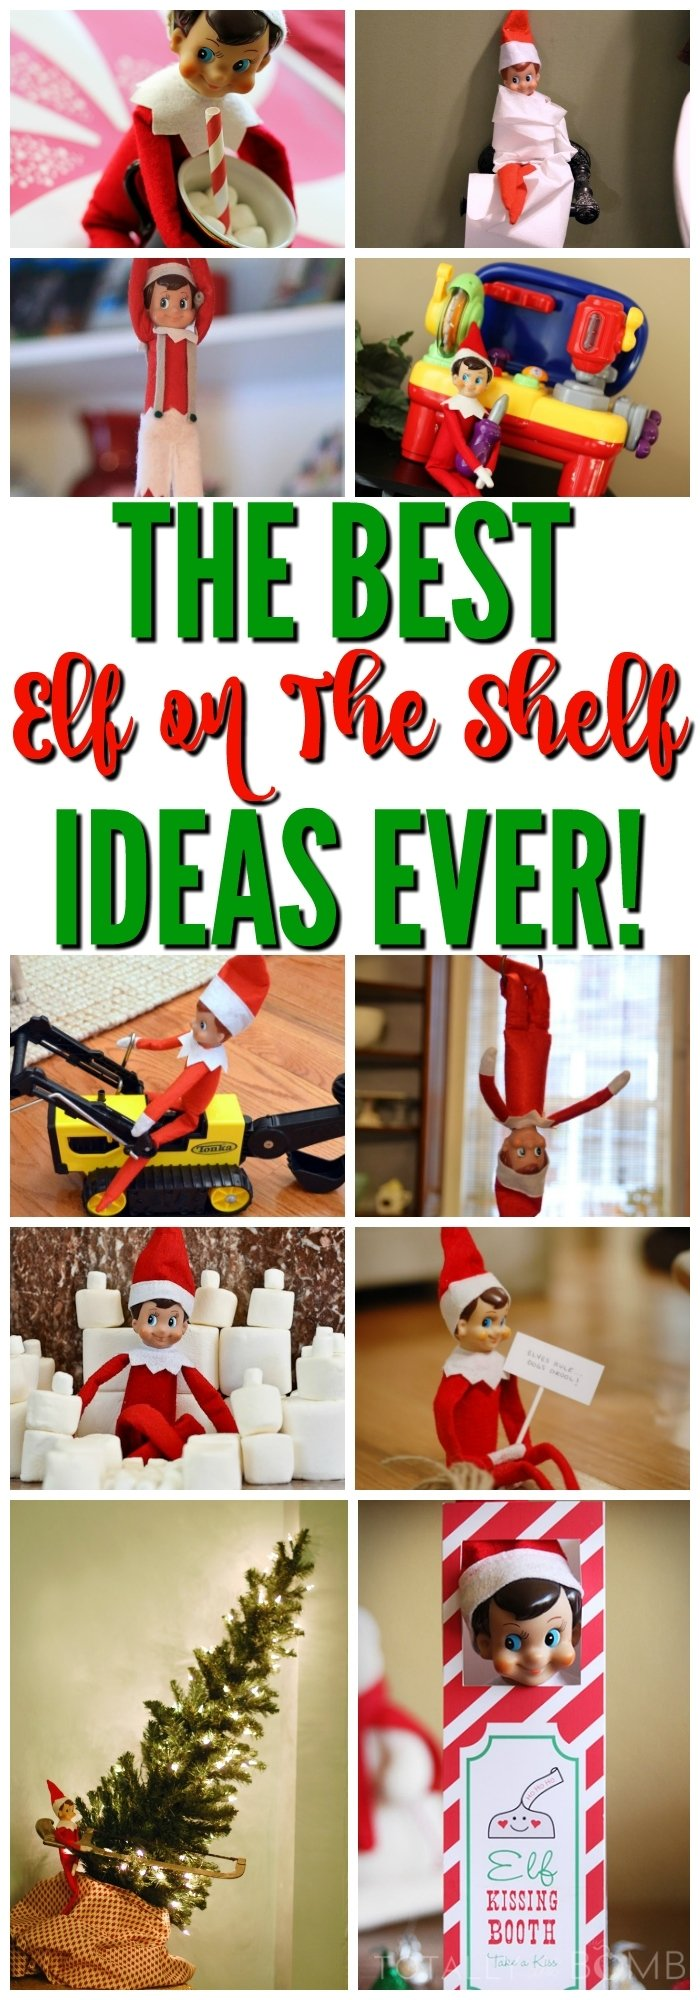 10 Most Recommended Elf On The Shelf Ideas 30 totally genius and easy elf on the shelf ideas 1 2020